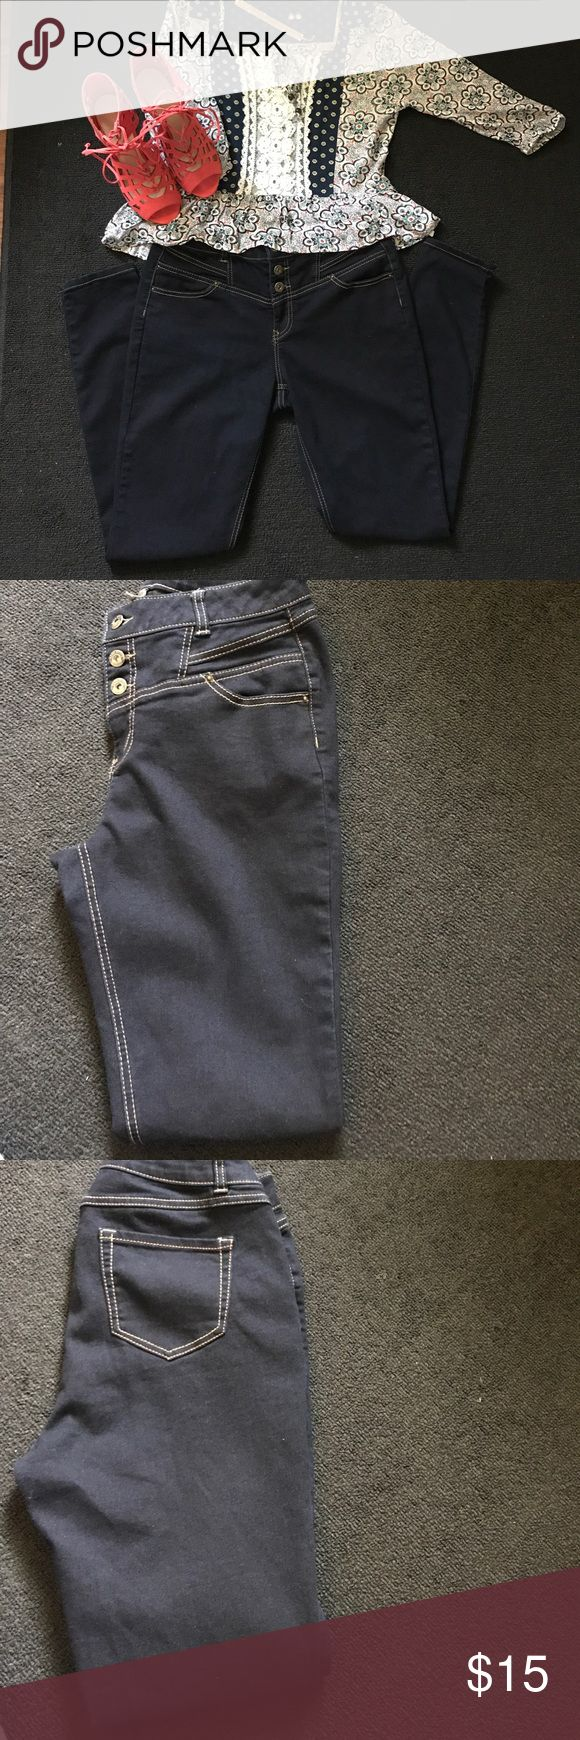 Blue spice high-waisted curvy jeans size 9/10 All you curvy girls out there looking for a pair of jeans to accentuate your curves?  I have them.  These dark wash high-waisted jeans are the way to go.  They run true to size but need the right girl to fill them out. blue spice Jeans Skinny